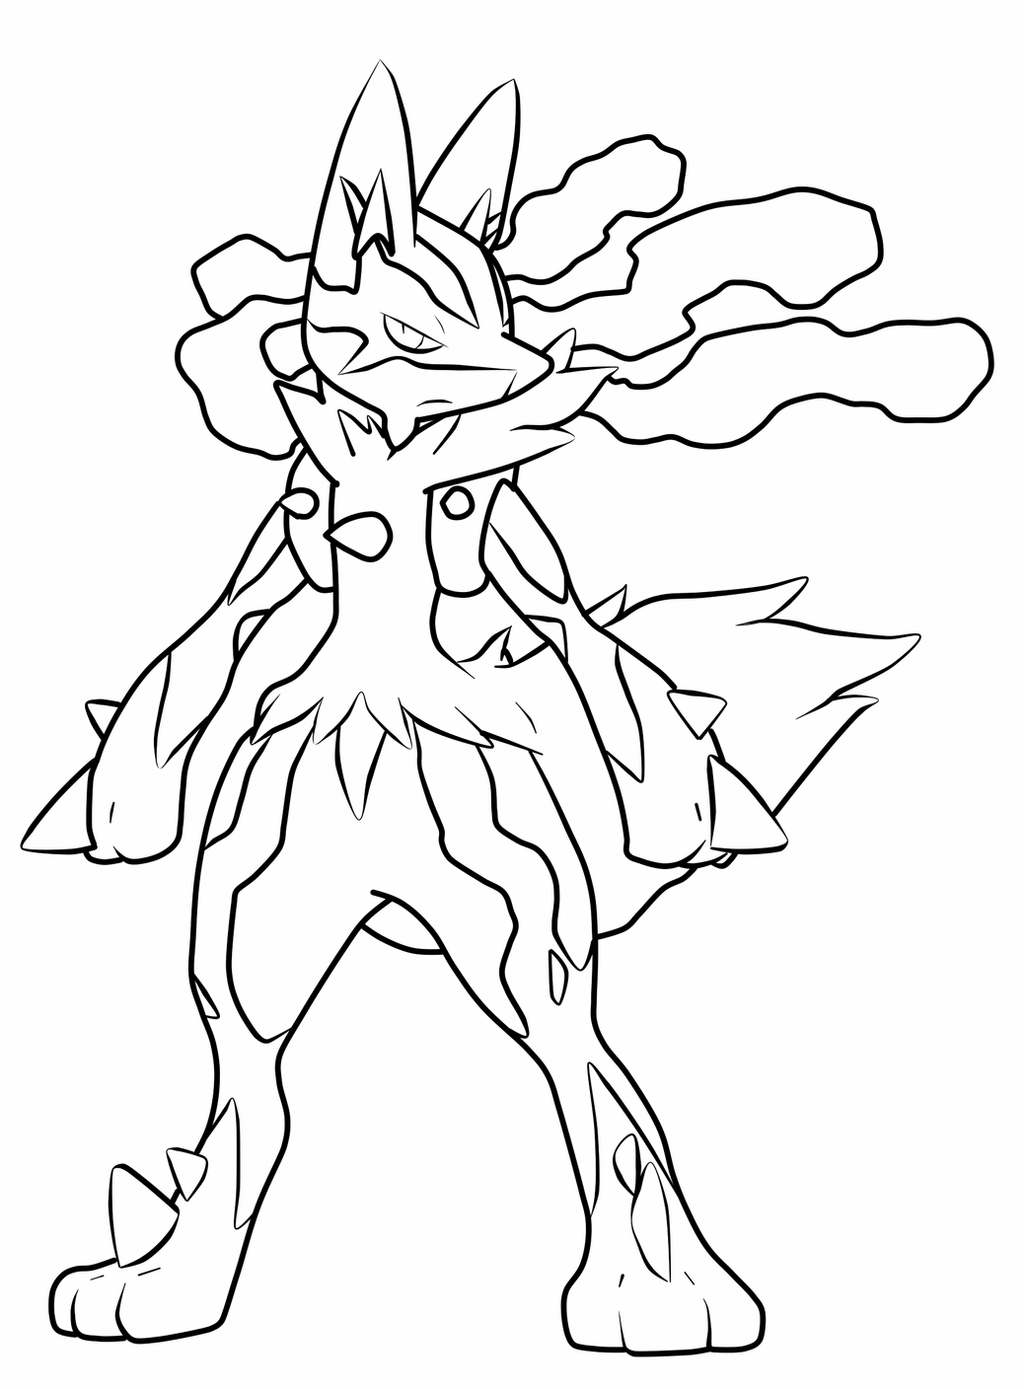 pokemon lucario coloring pages angry mega lucario coloring page free printable coloring coloring lucario pokemon pages